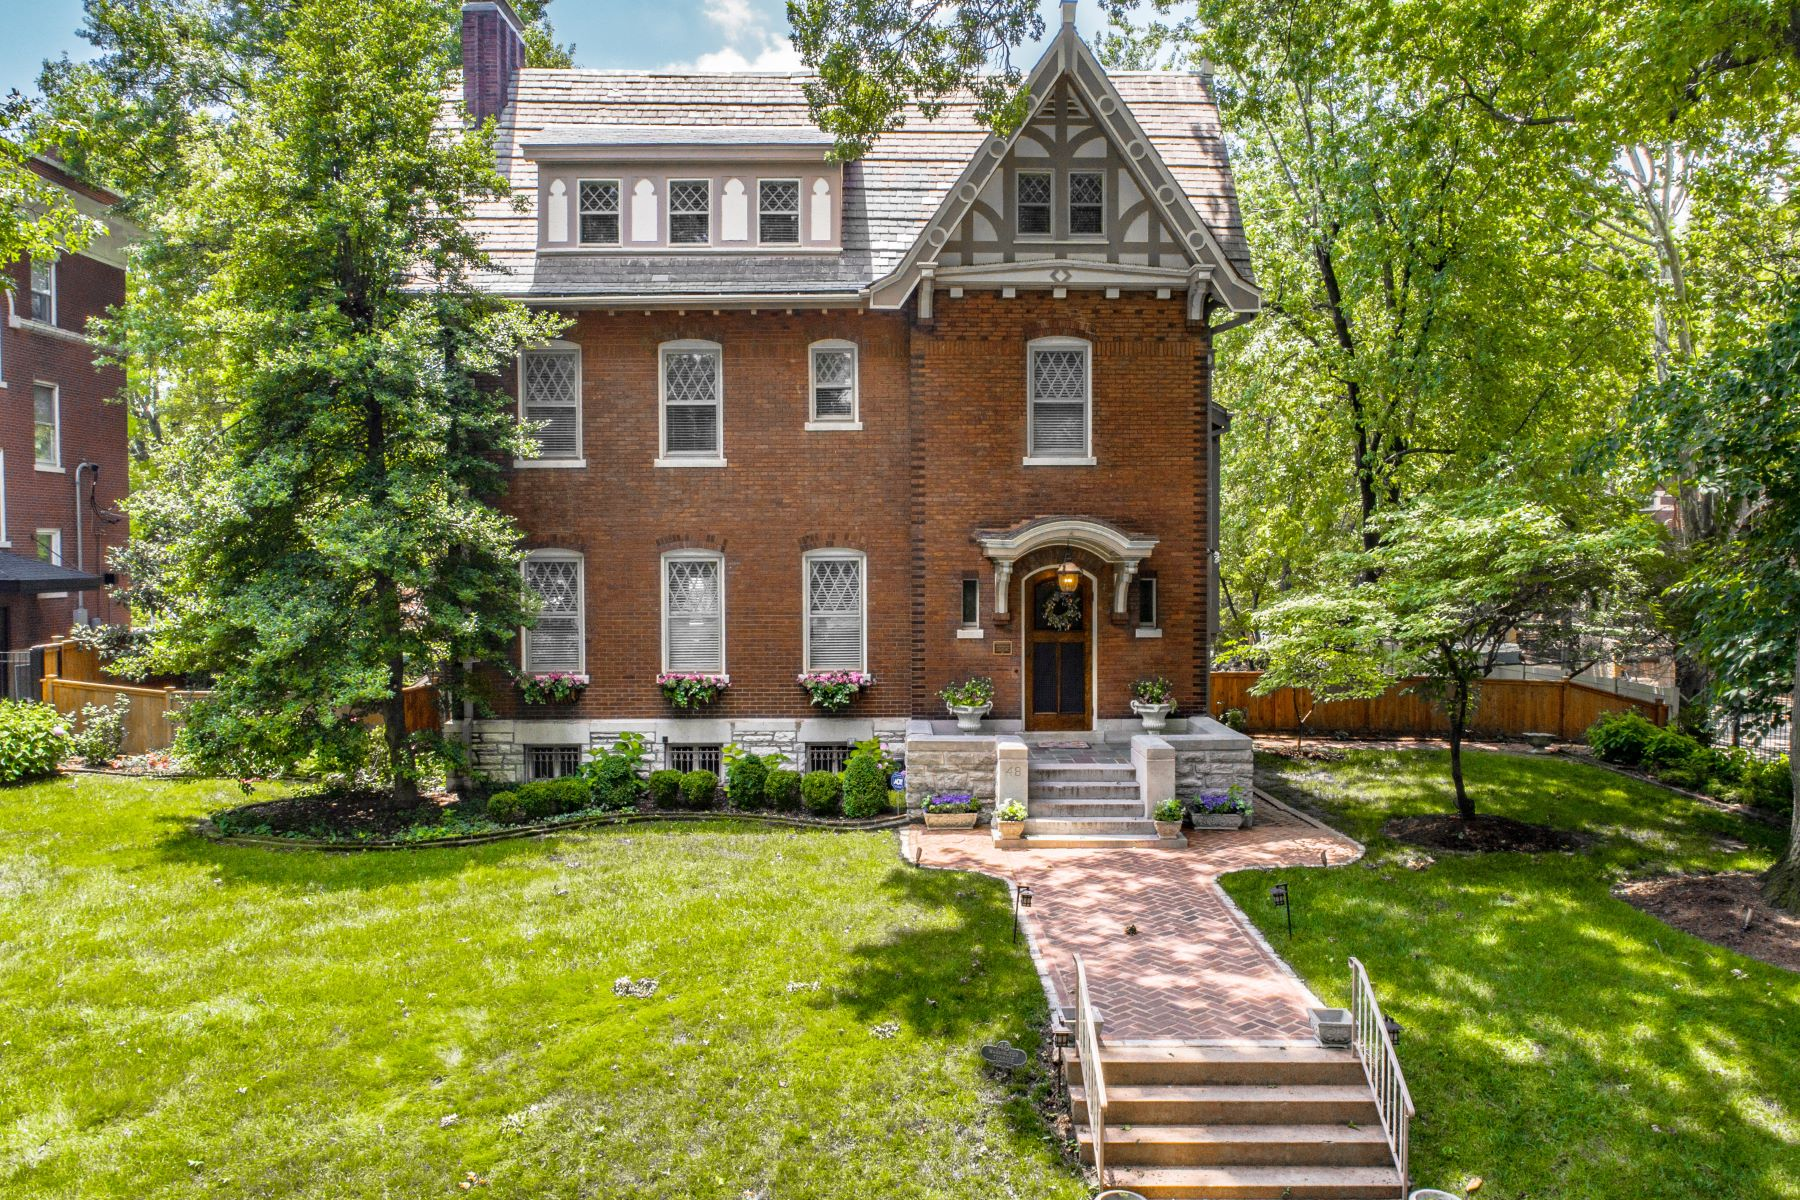 Single Family Homes for Sale at Stately Central West End home designed in 1909 by Louis Spiering 48 Washington Terrace St. Louis, Missouri 63112 United States